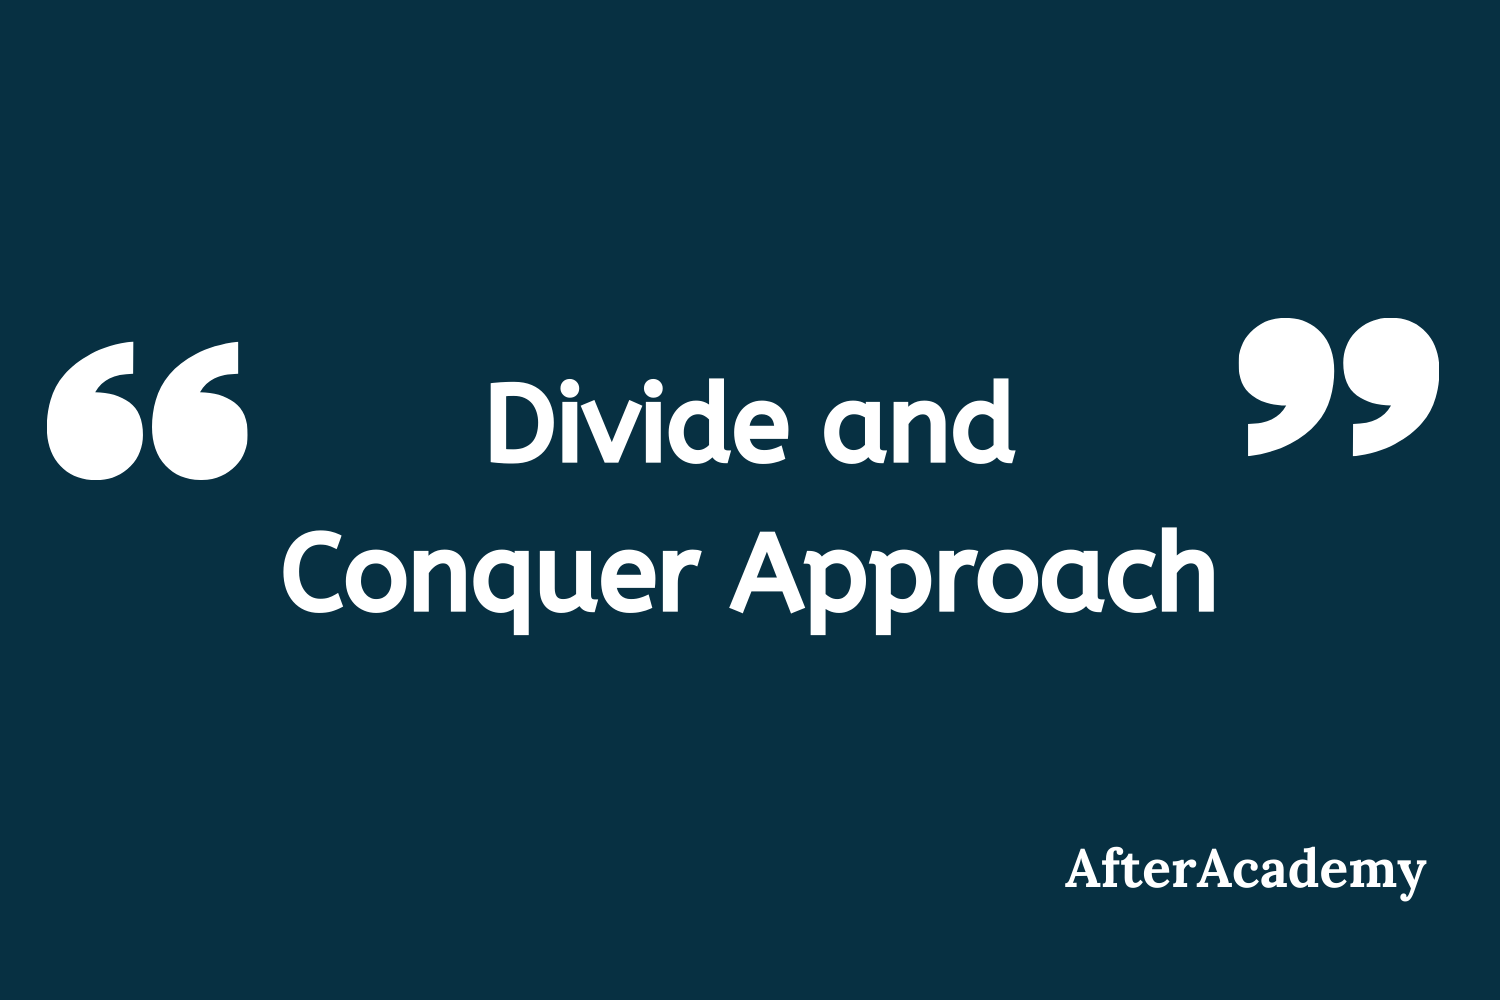 Divide and Conquer Approach in Programming